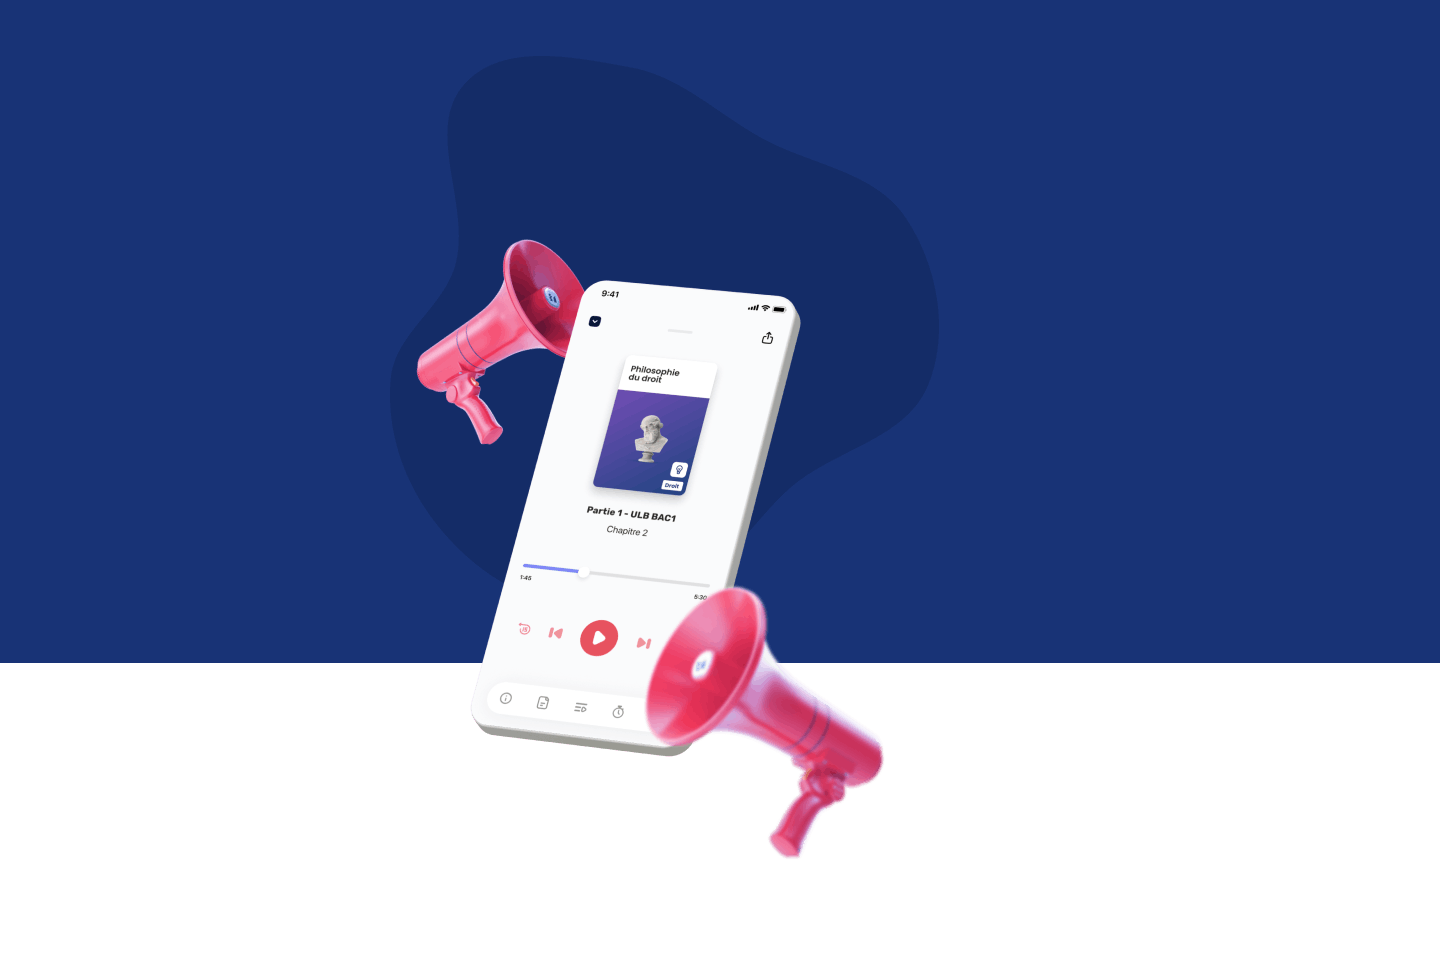 Interview Easyllabus - Mockup educational podcasts